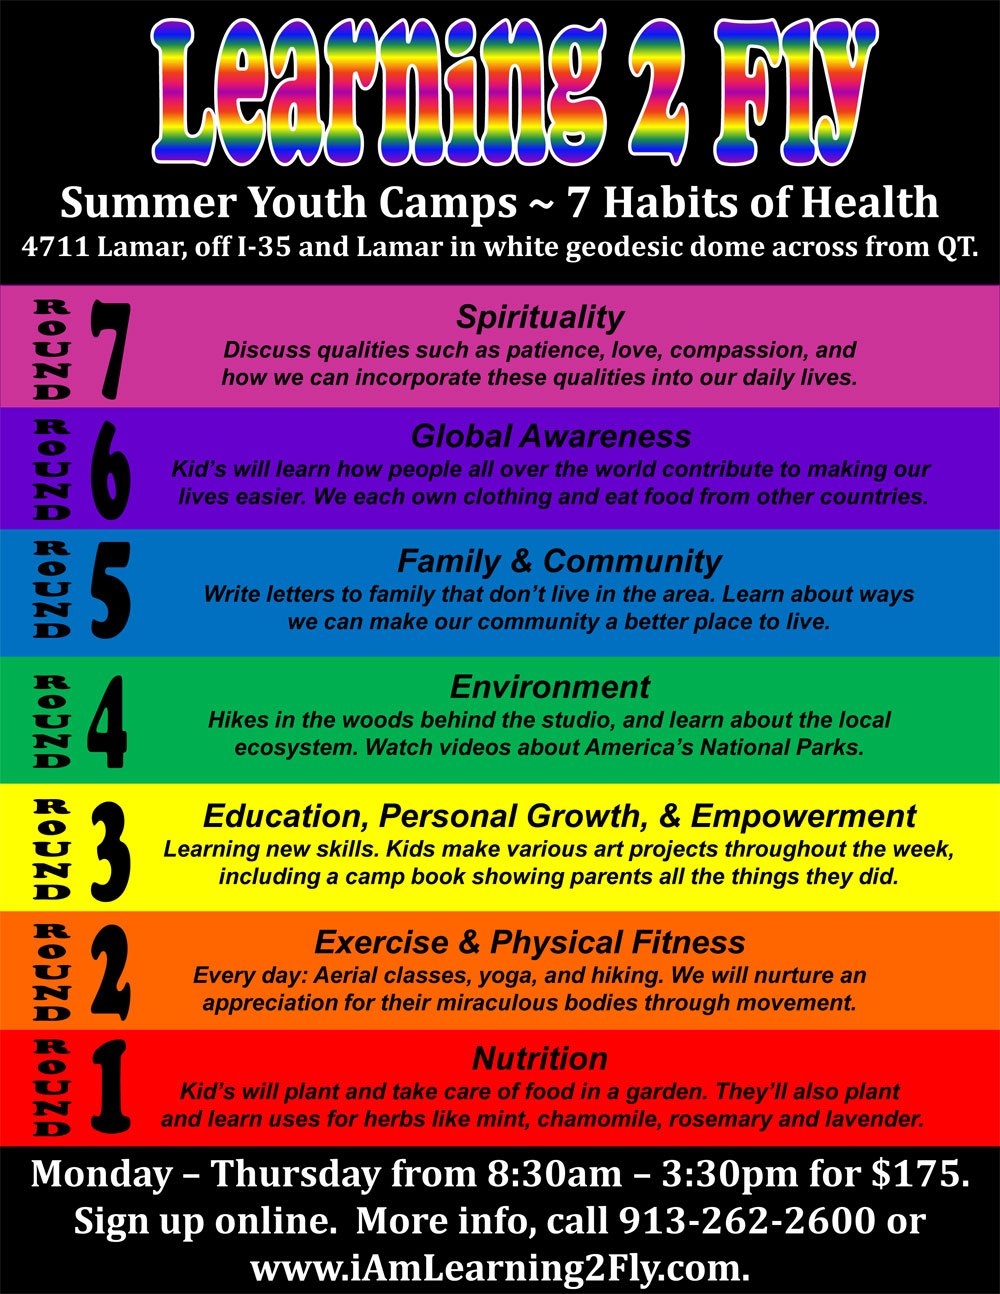 THREE MORE WEEKS OF YOUTH SUMMER CAMPS!